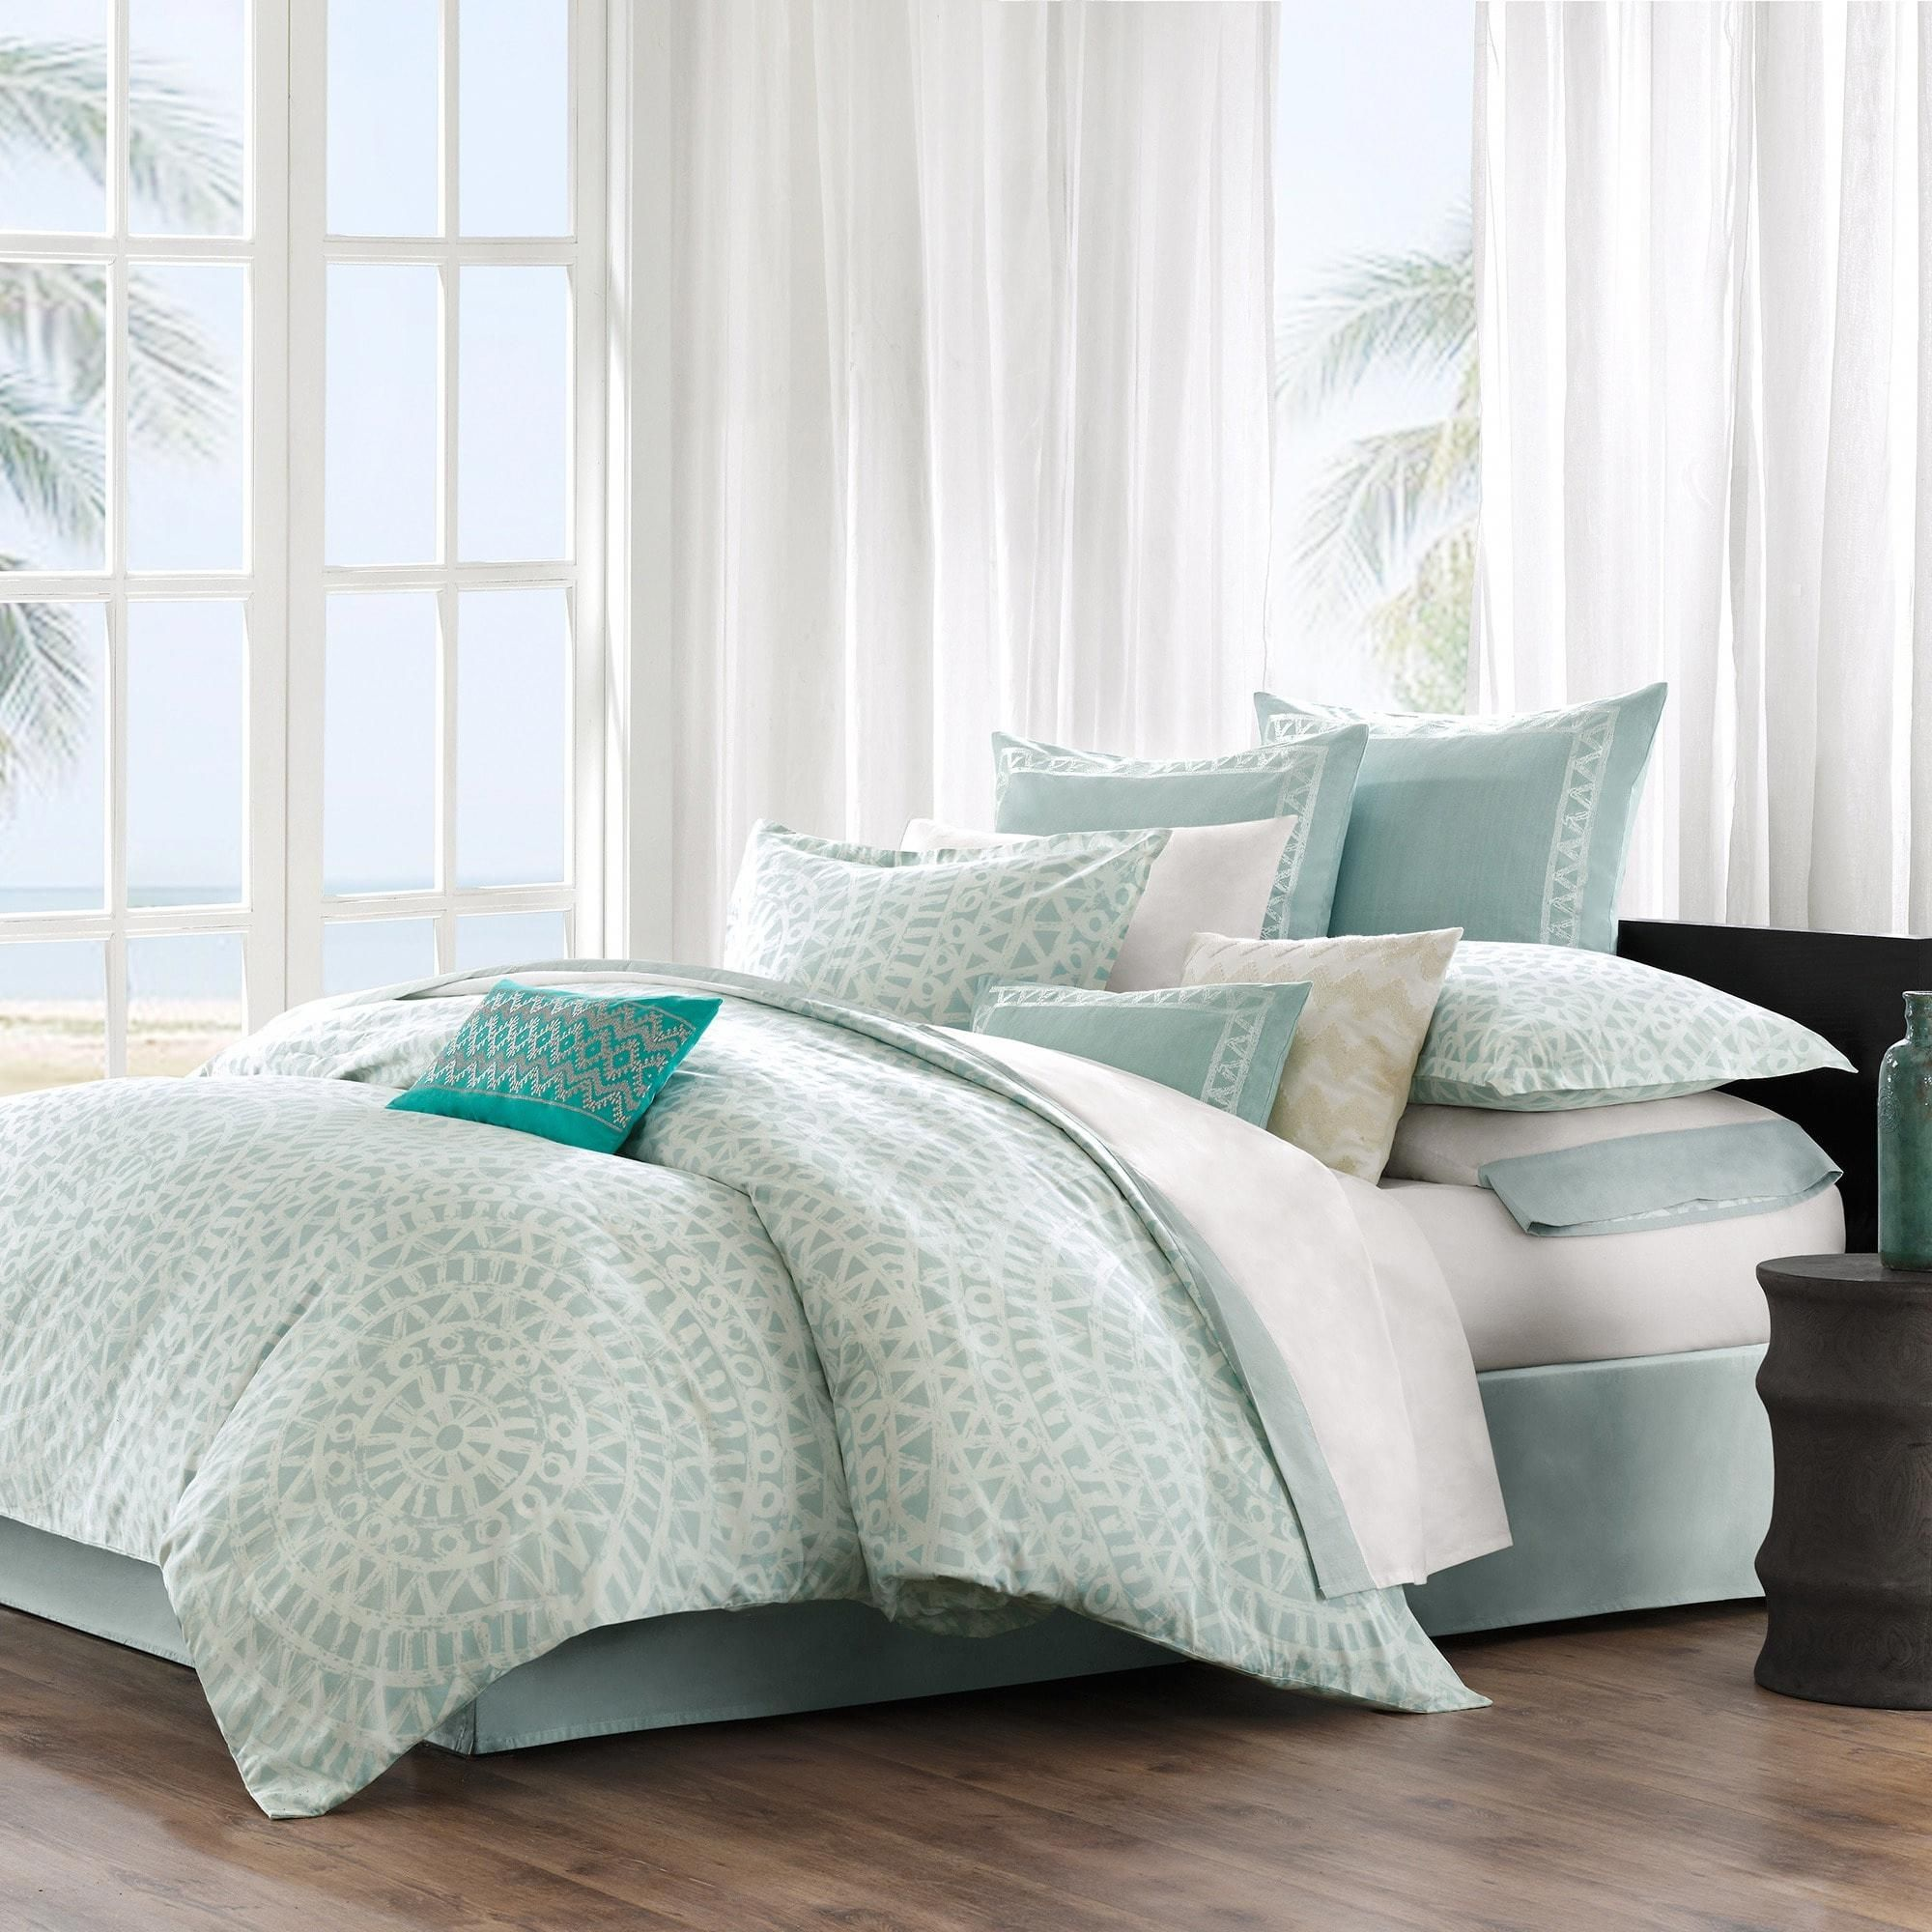 What Bed Sheets Are The Best LuxuryBedLinenItalian Post